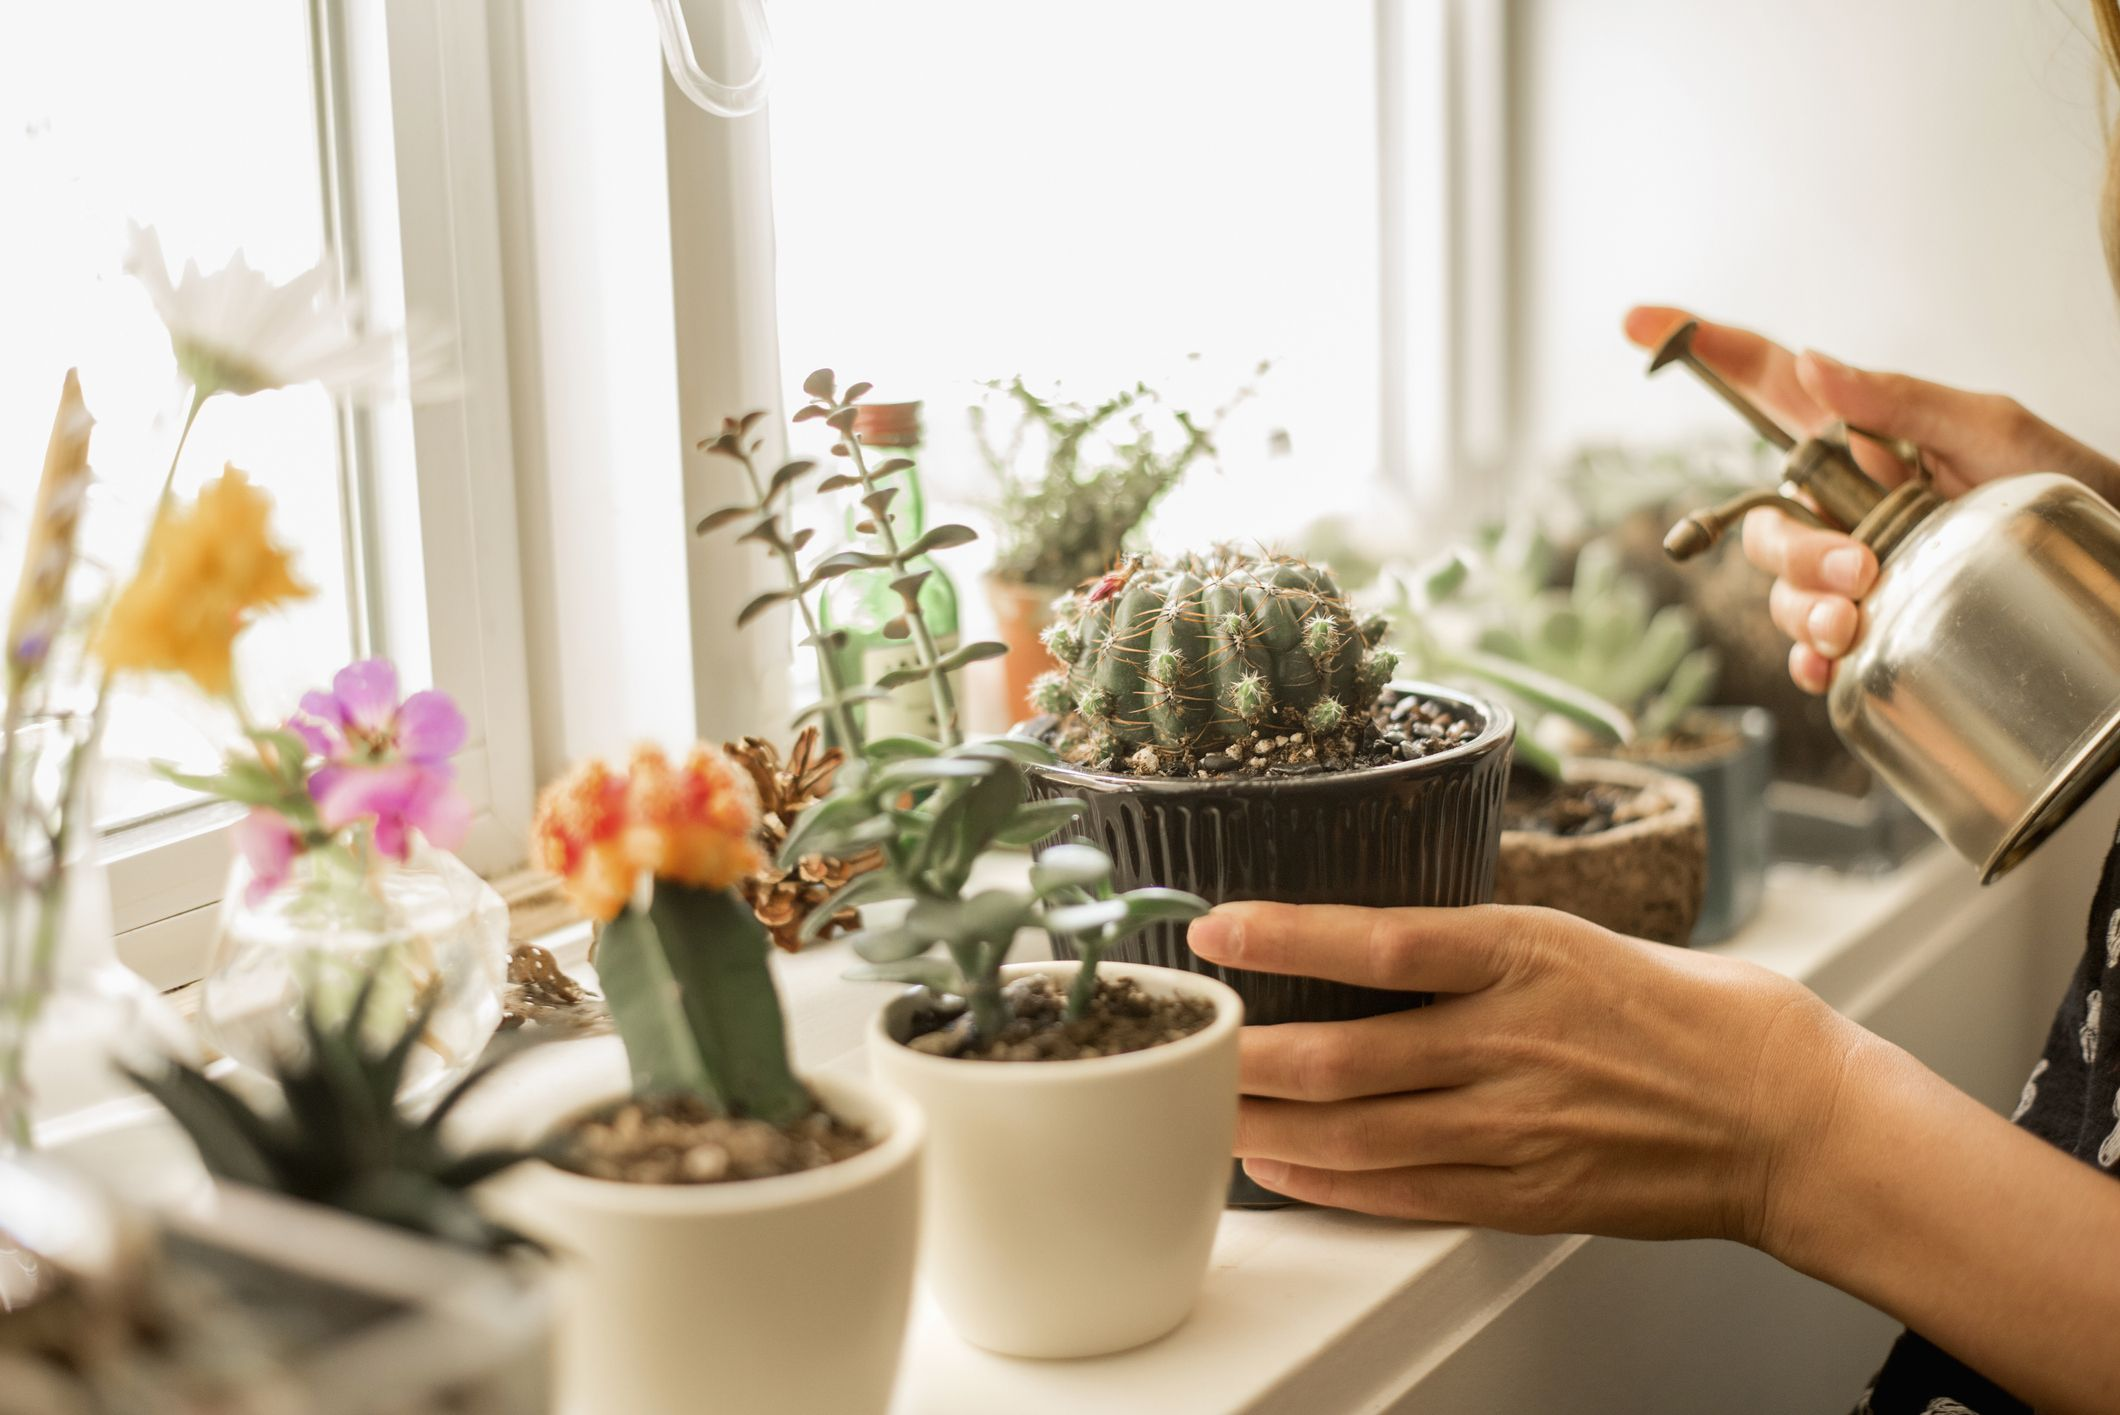 15 Of The Best Types Of Cactus Different Types Of Indoor Cactus Plants And Flowers